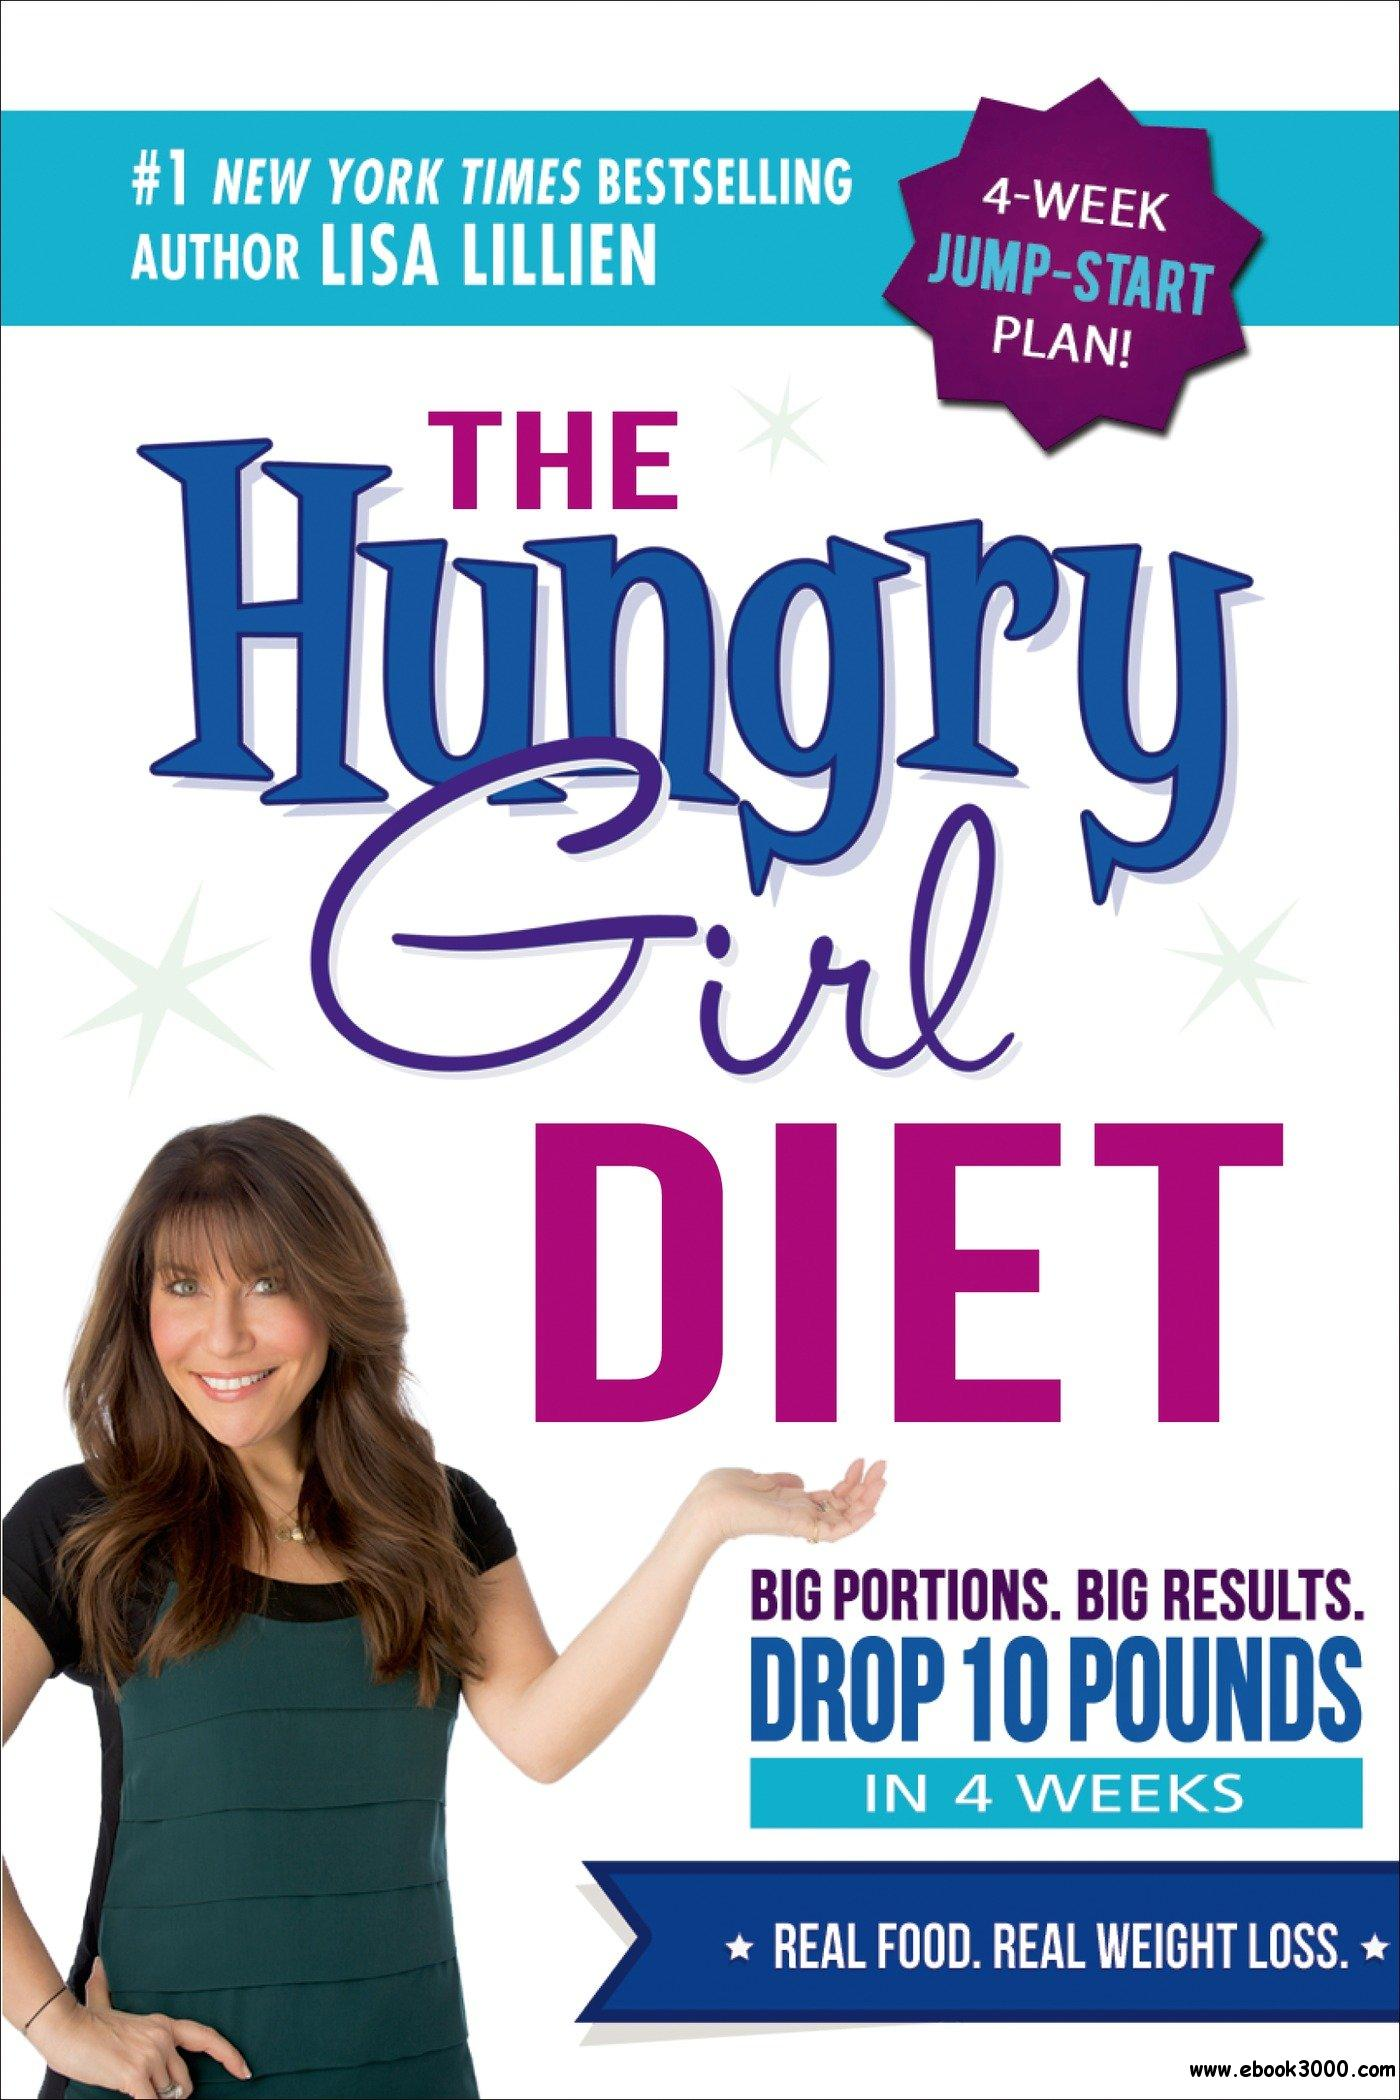 The Hungry Girl Diet: Big Portions. Big Results. Drop 10 Pounds in 4 Weeks free download